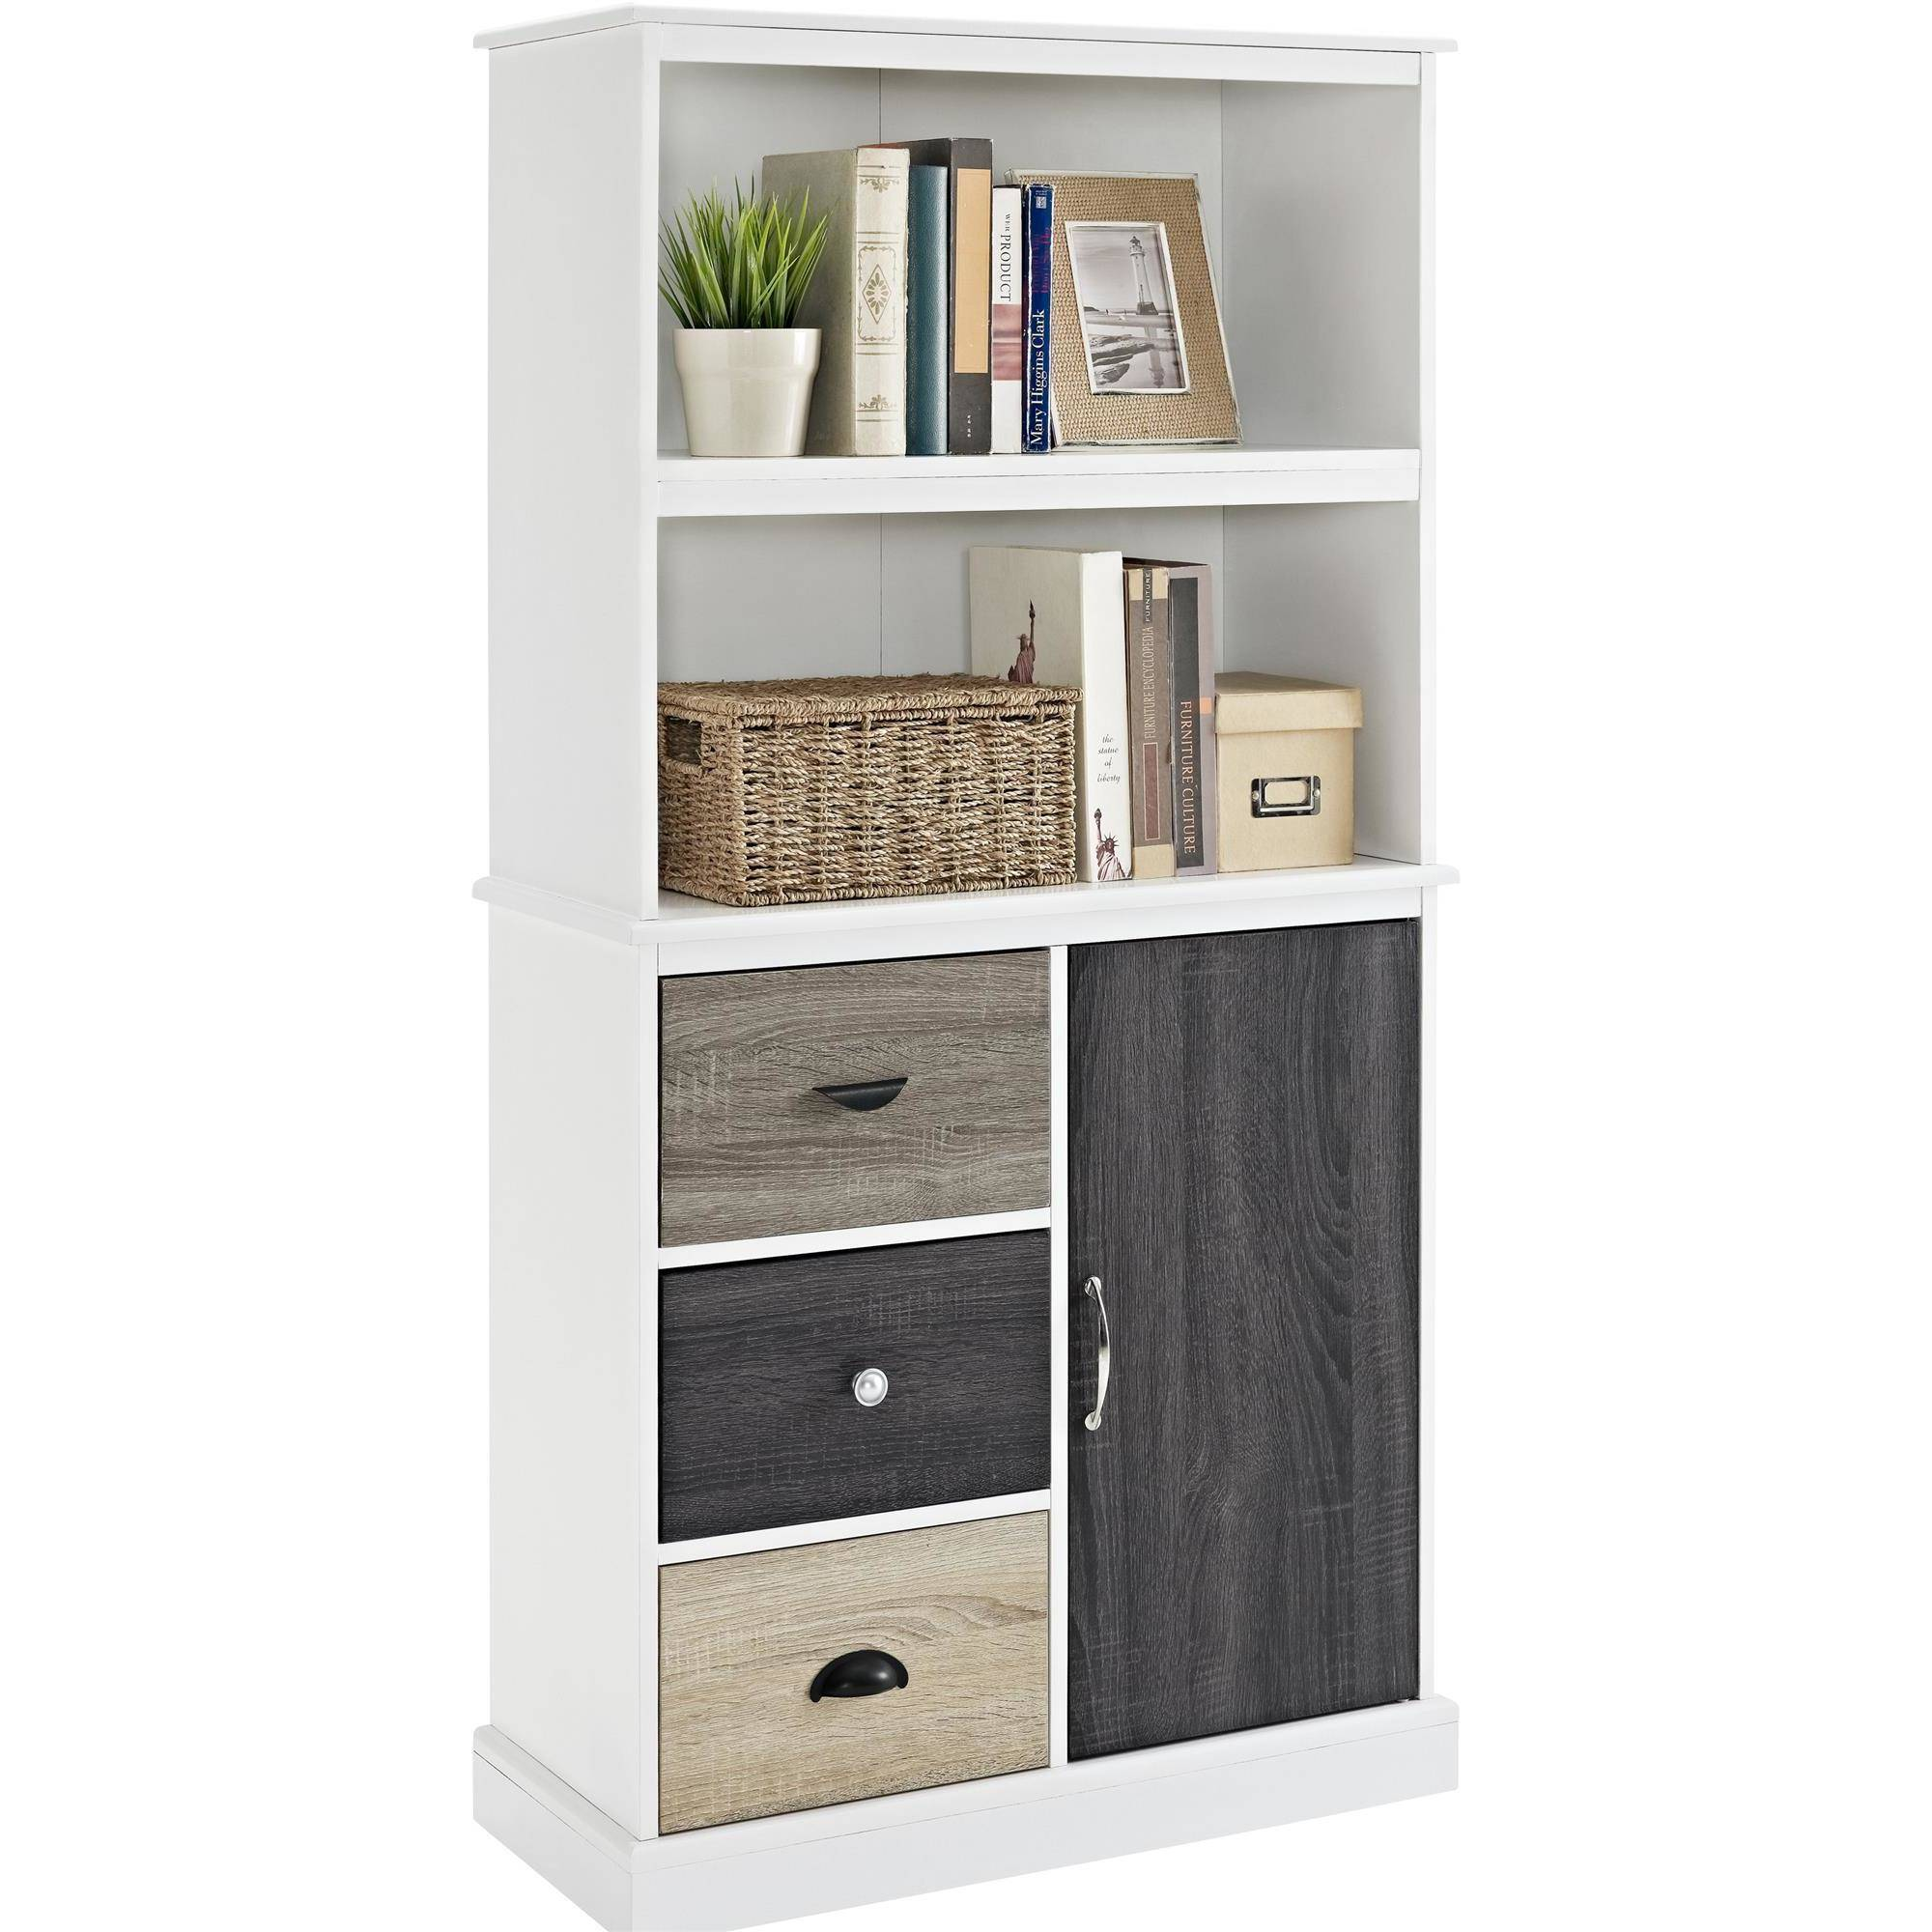 drawers cabinets fashions chesterfield best storage drawer and with floor home collection doors for ideas elegant homebnc cabinet bathroom